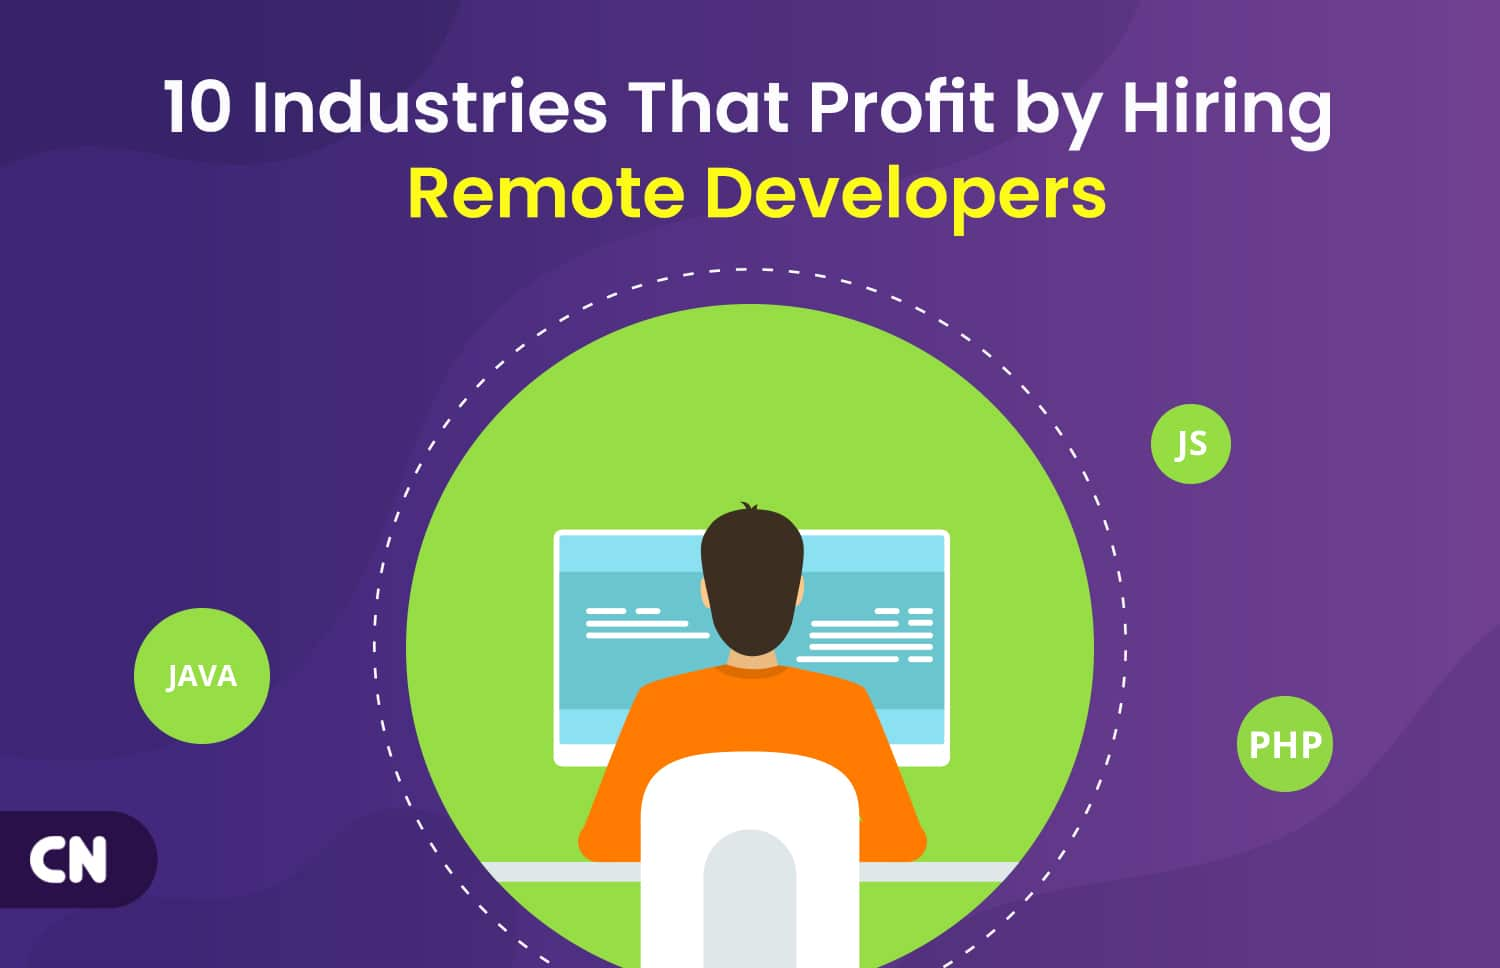 Hiring Remote Developers